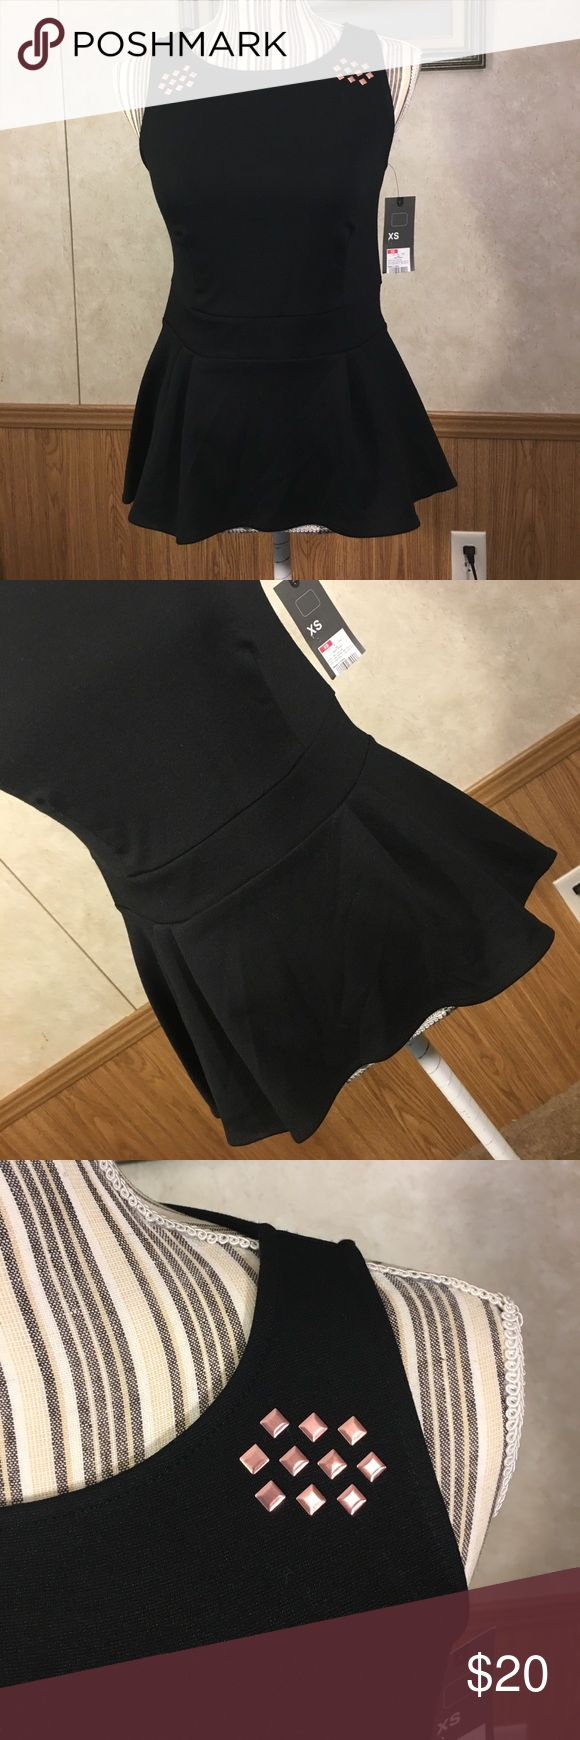 NWT peplum top Black peplum top with copper embellished top. Mossimo Supply Co. Tops